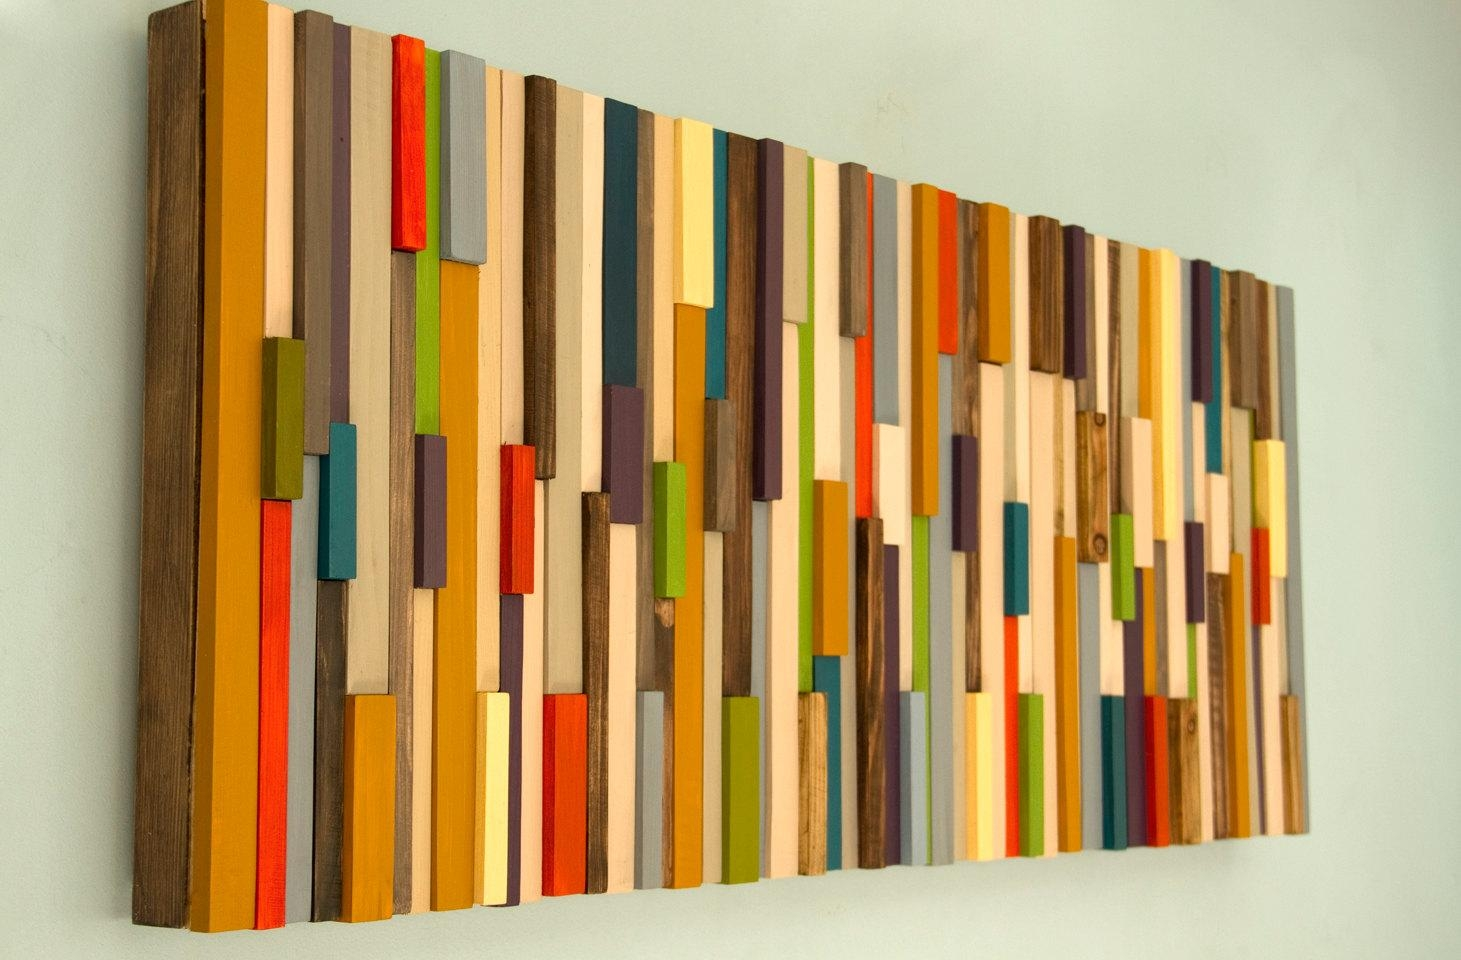 Modern Large Wall Art Reclaimed Wood Art Sculpture Painted Inside Large Yellow Wall Art (Image 13 of 20)